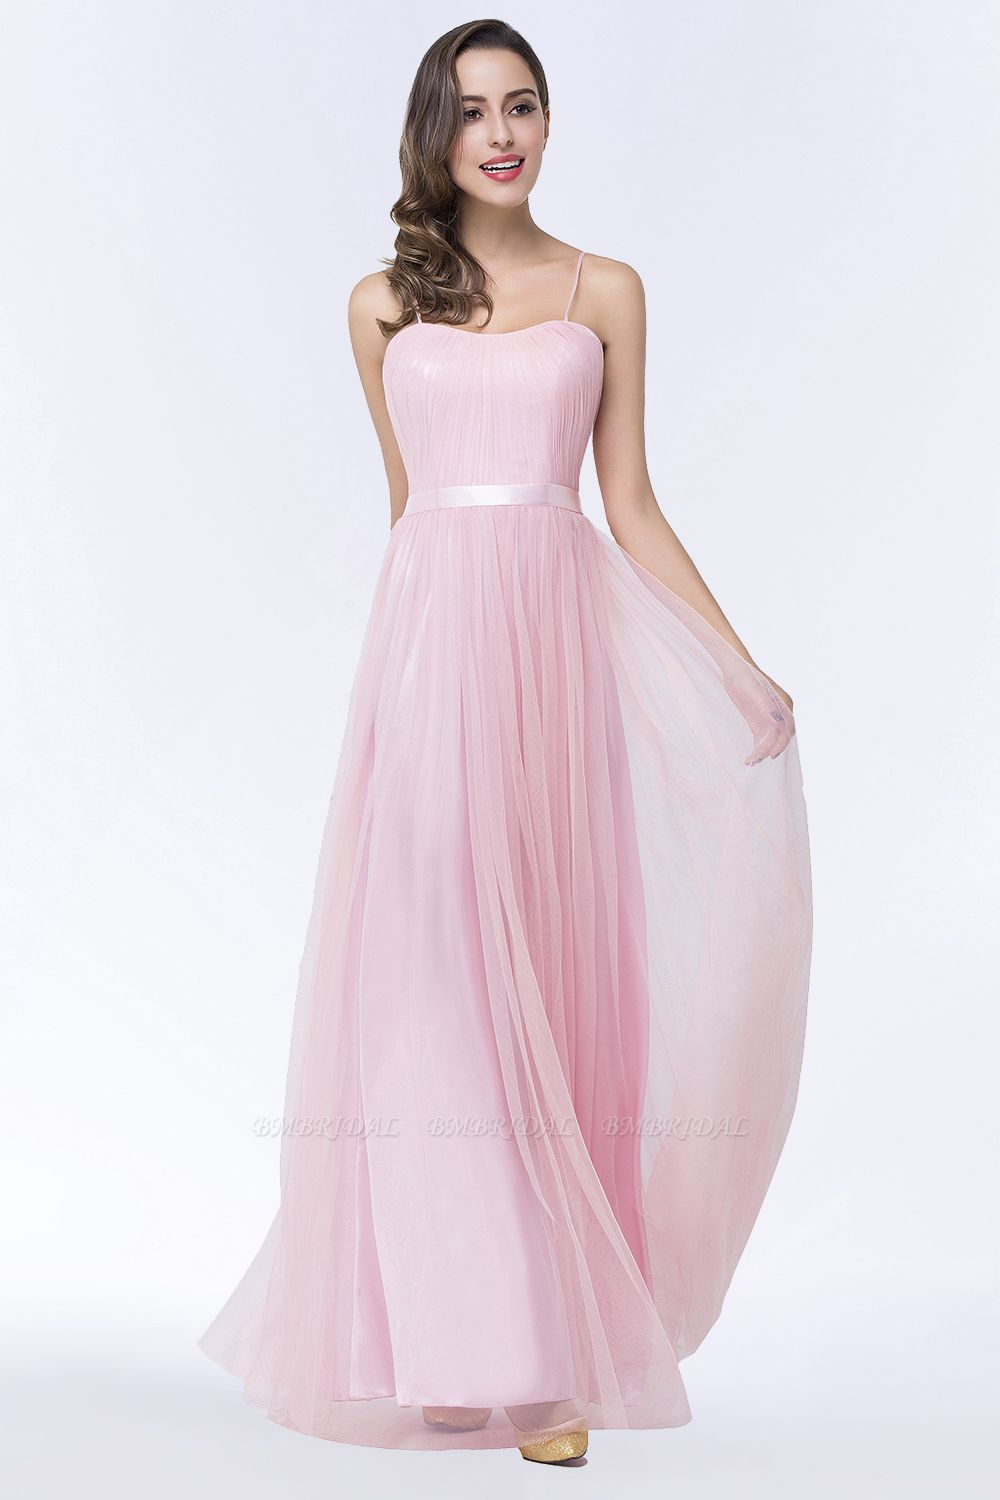 Modest Spaghetti-Straps Sweetheart Long Bridesmaid Dress with Sash